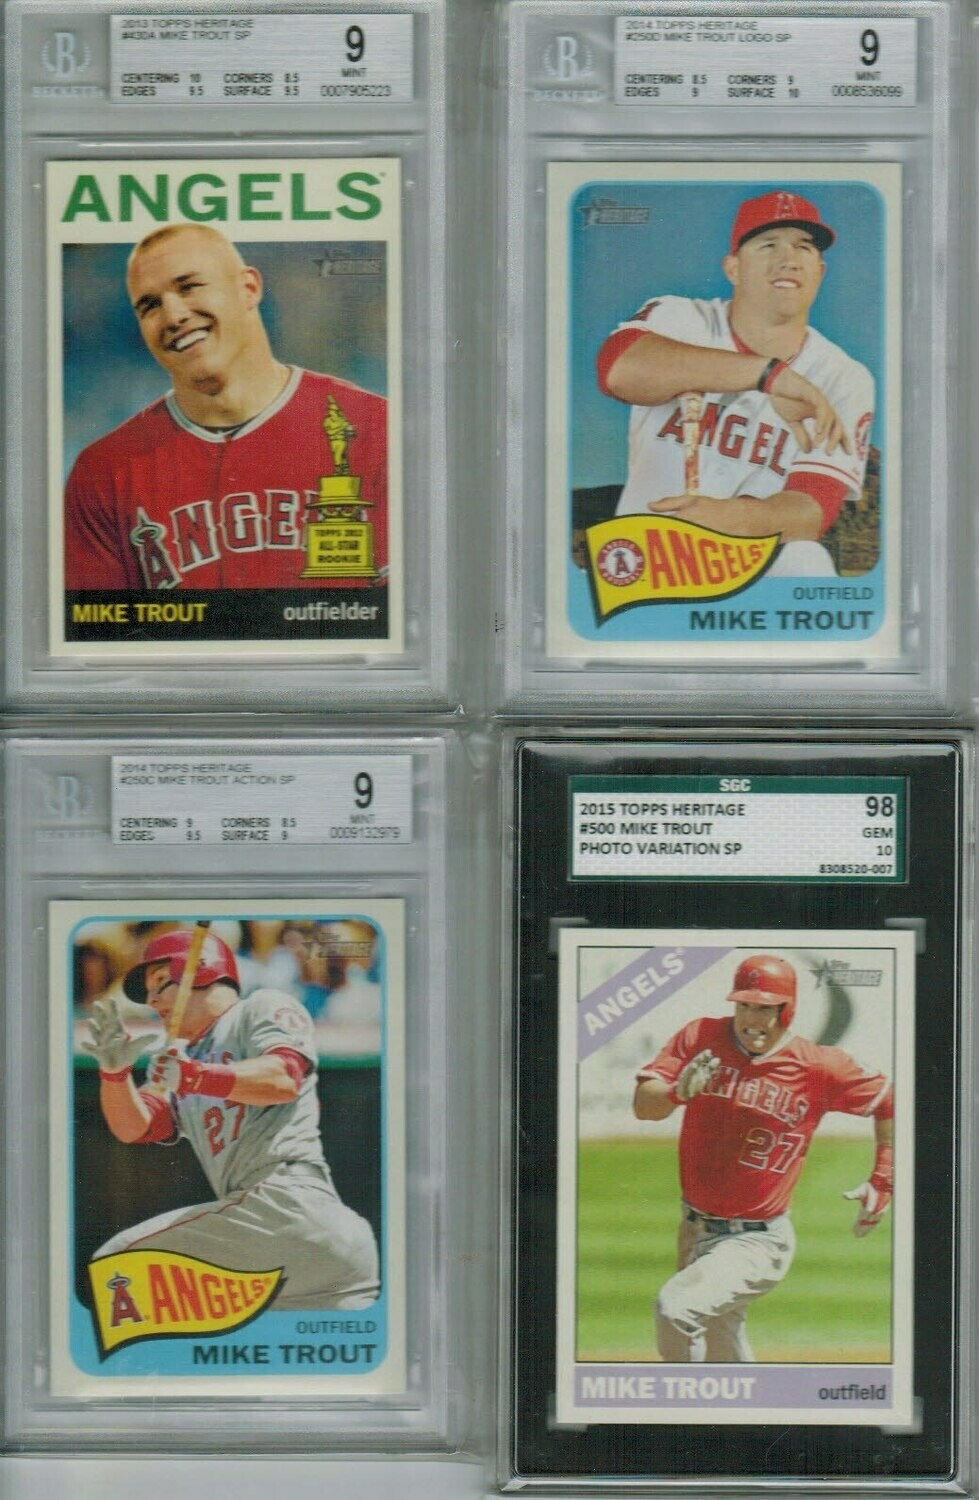 2015 Topps Heritage #500 Mike Trout Photo Variation SP SGC 10